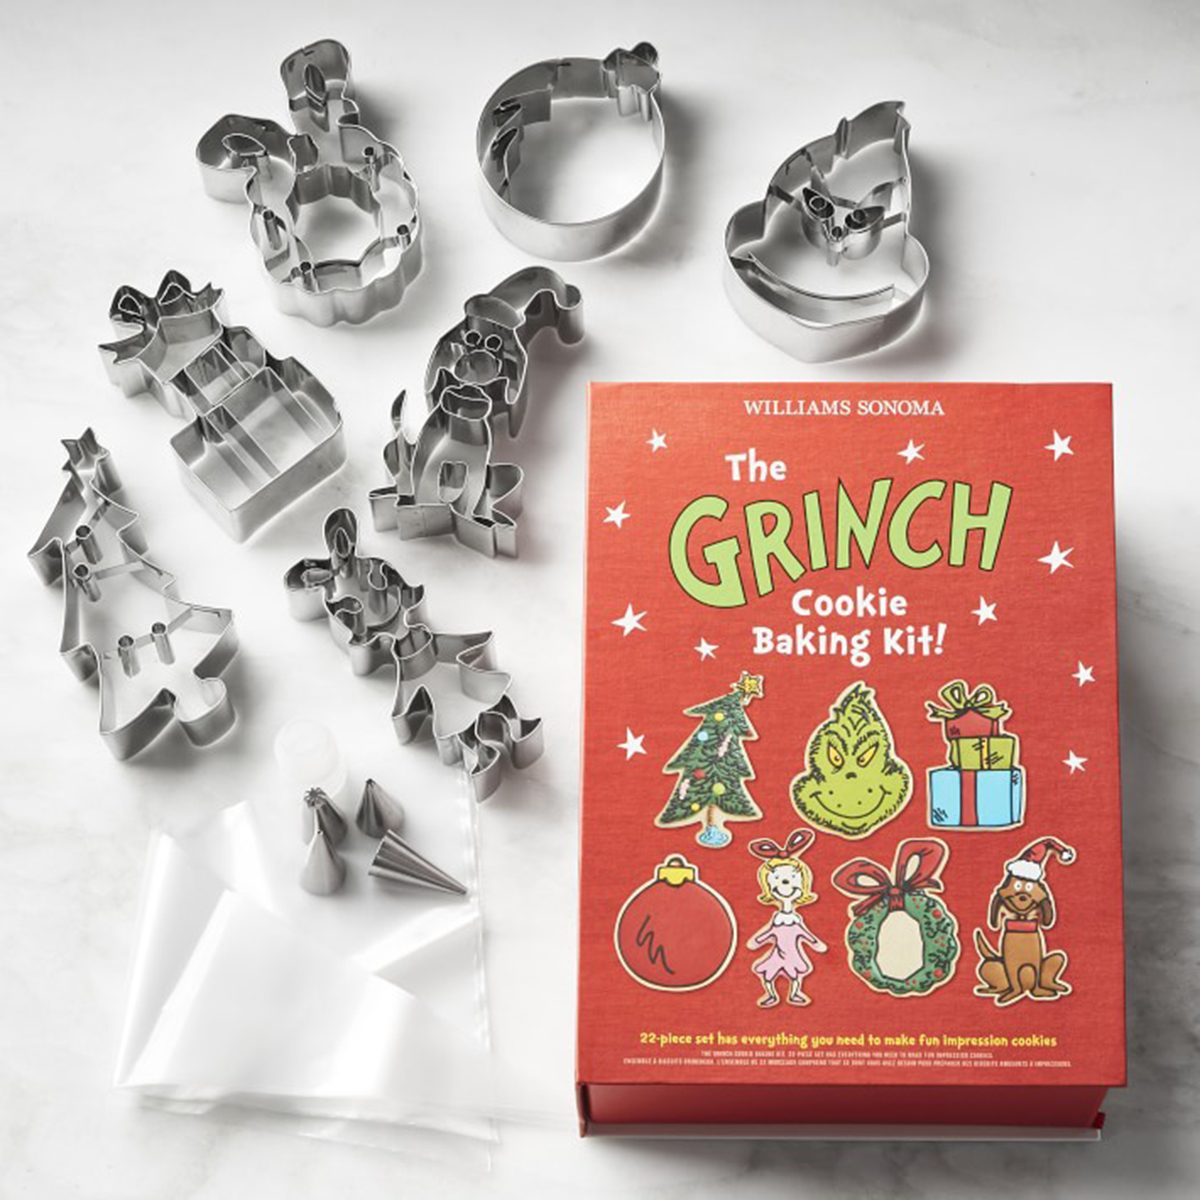 The Grinch™ Christmas Cookie Kit